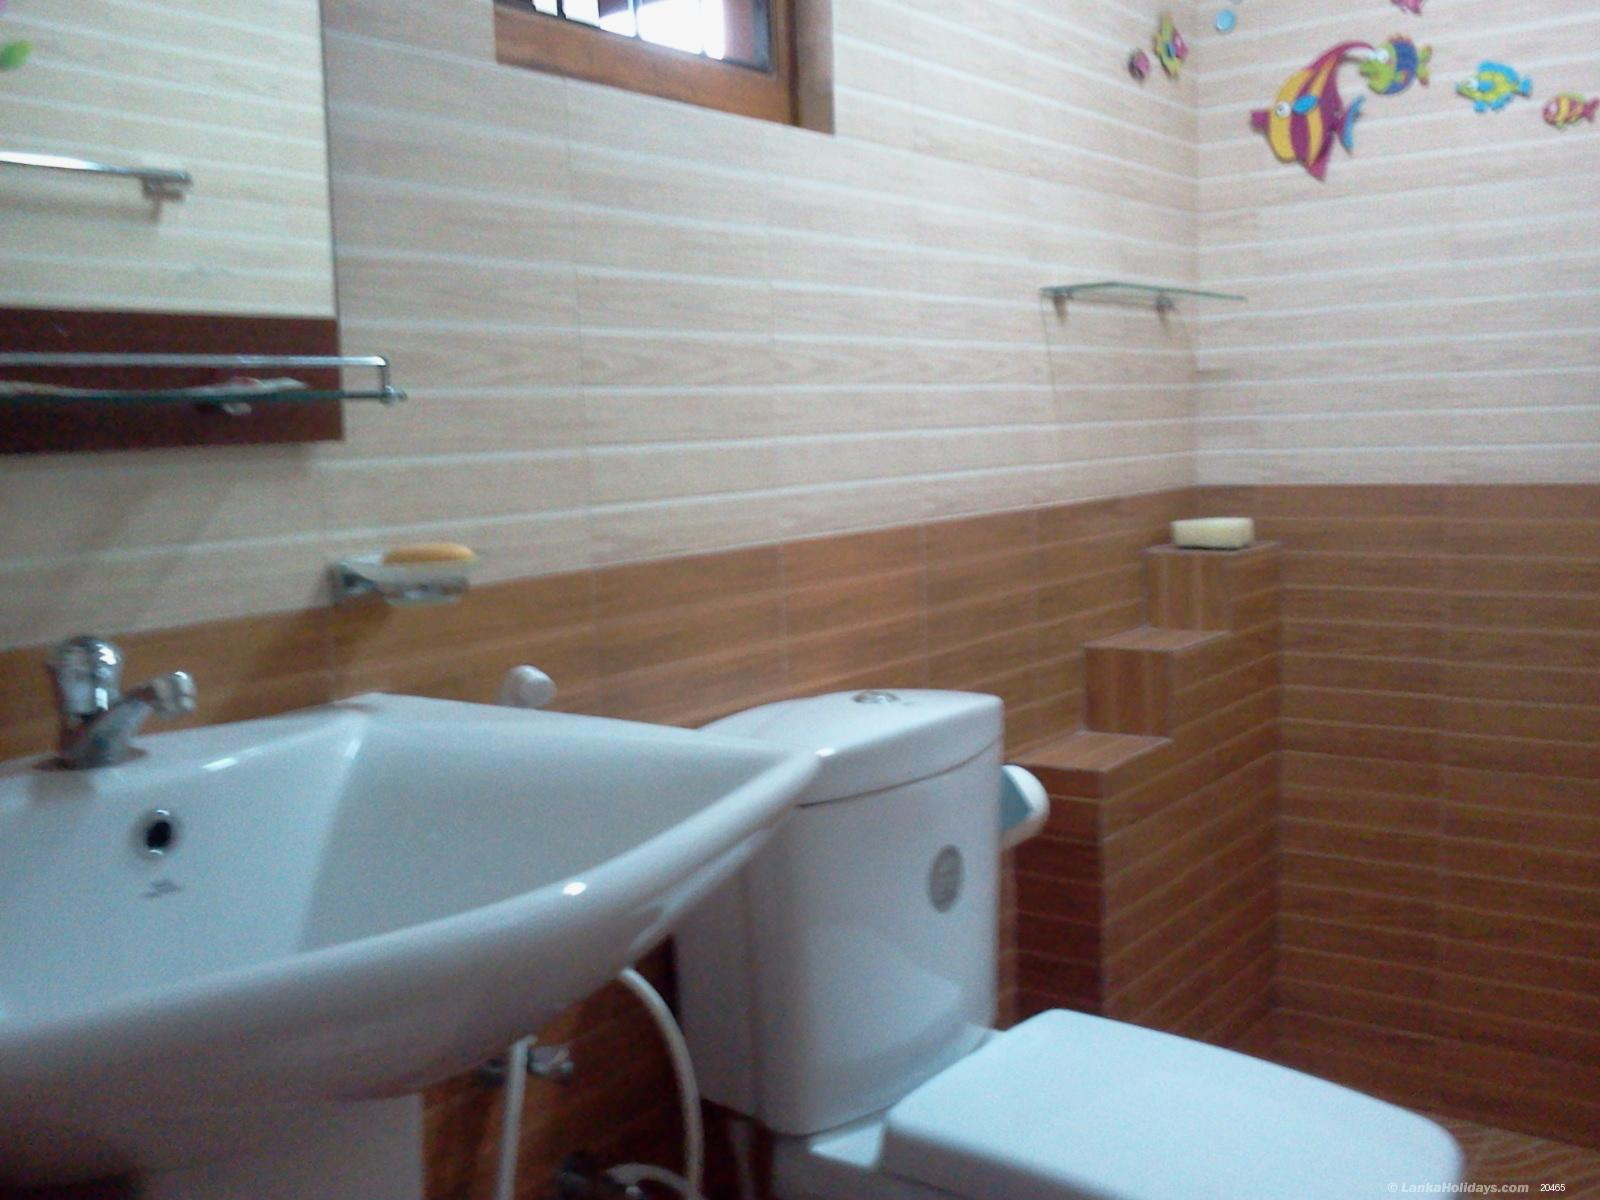 Self Catering Home Stays in Beruwala - 2 A/C bed roomed upstair